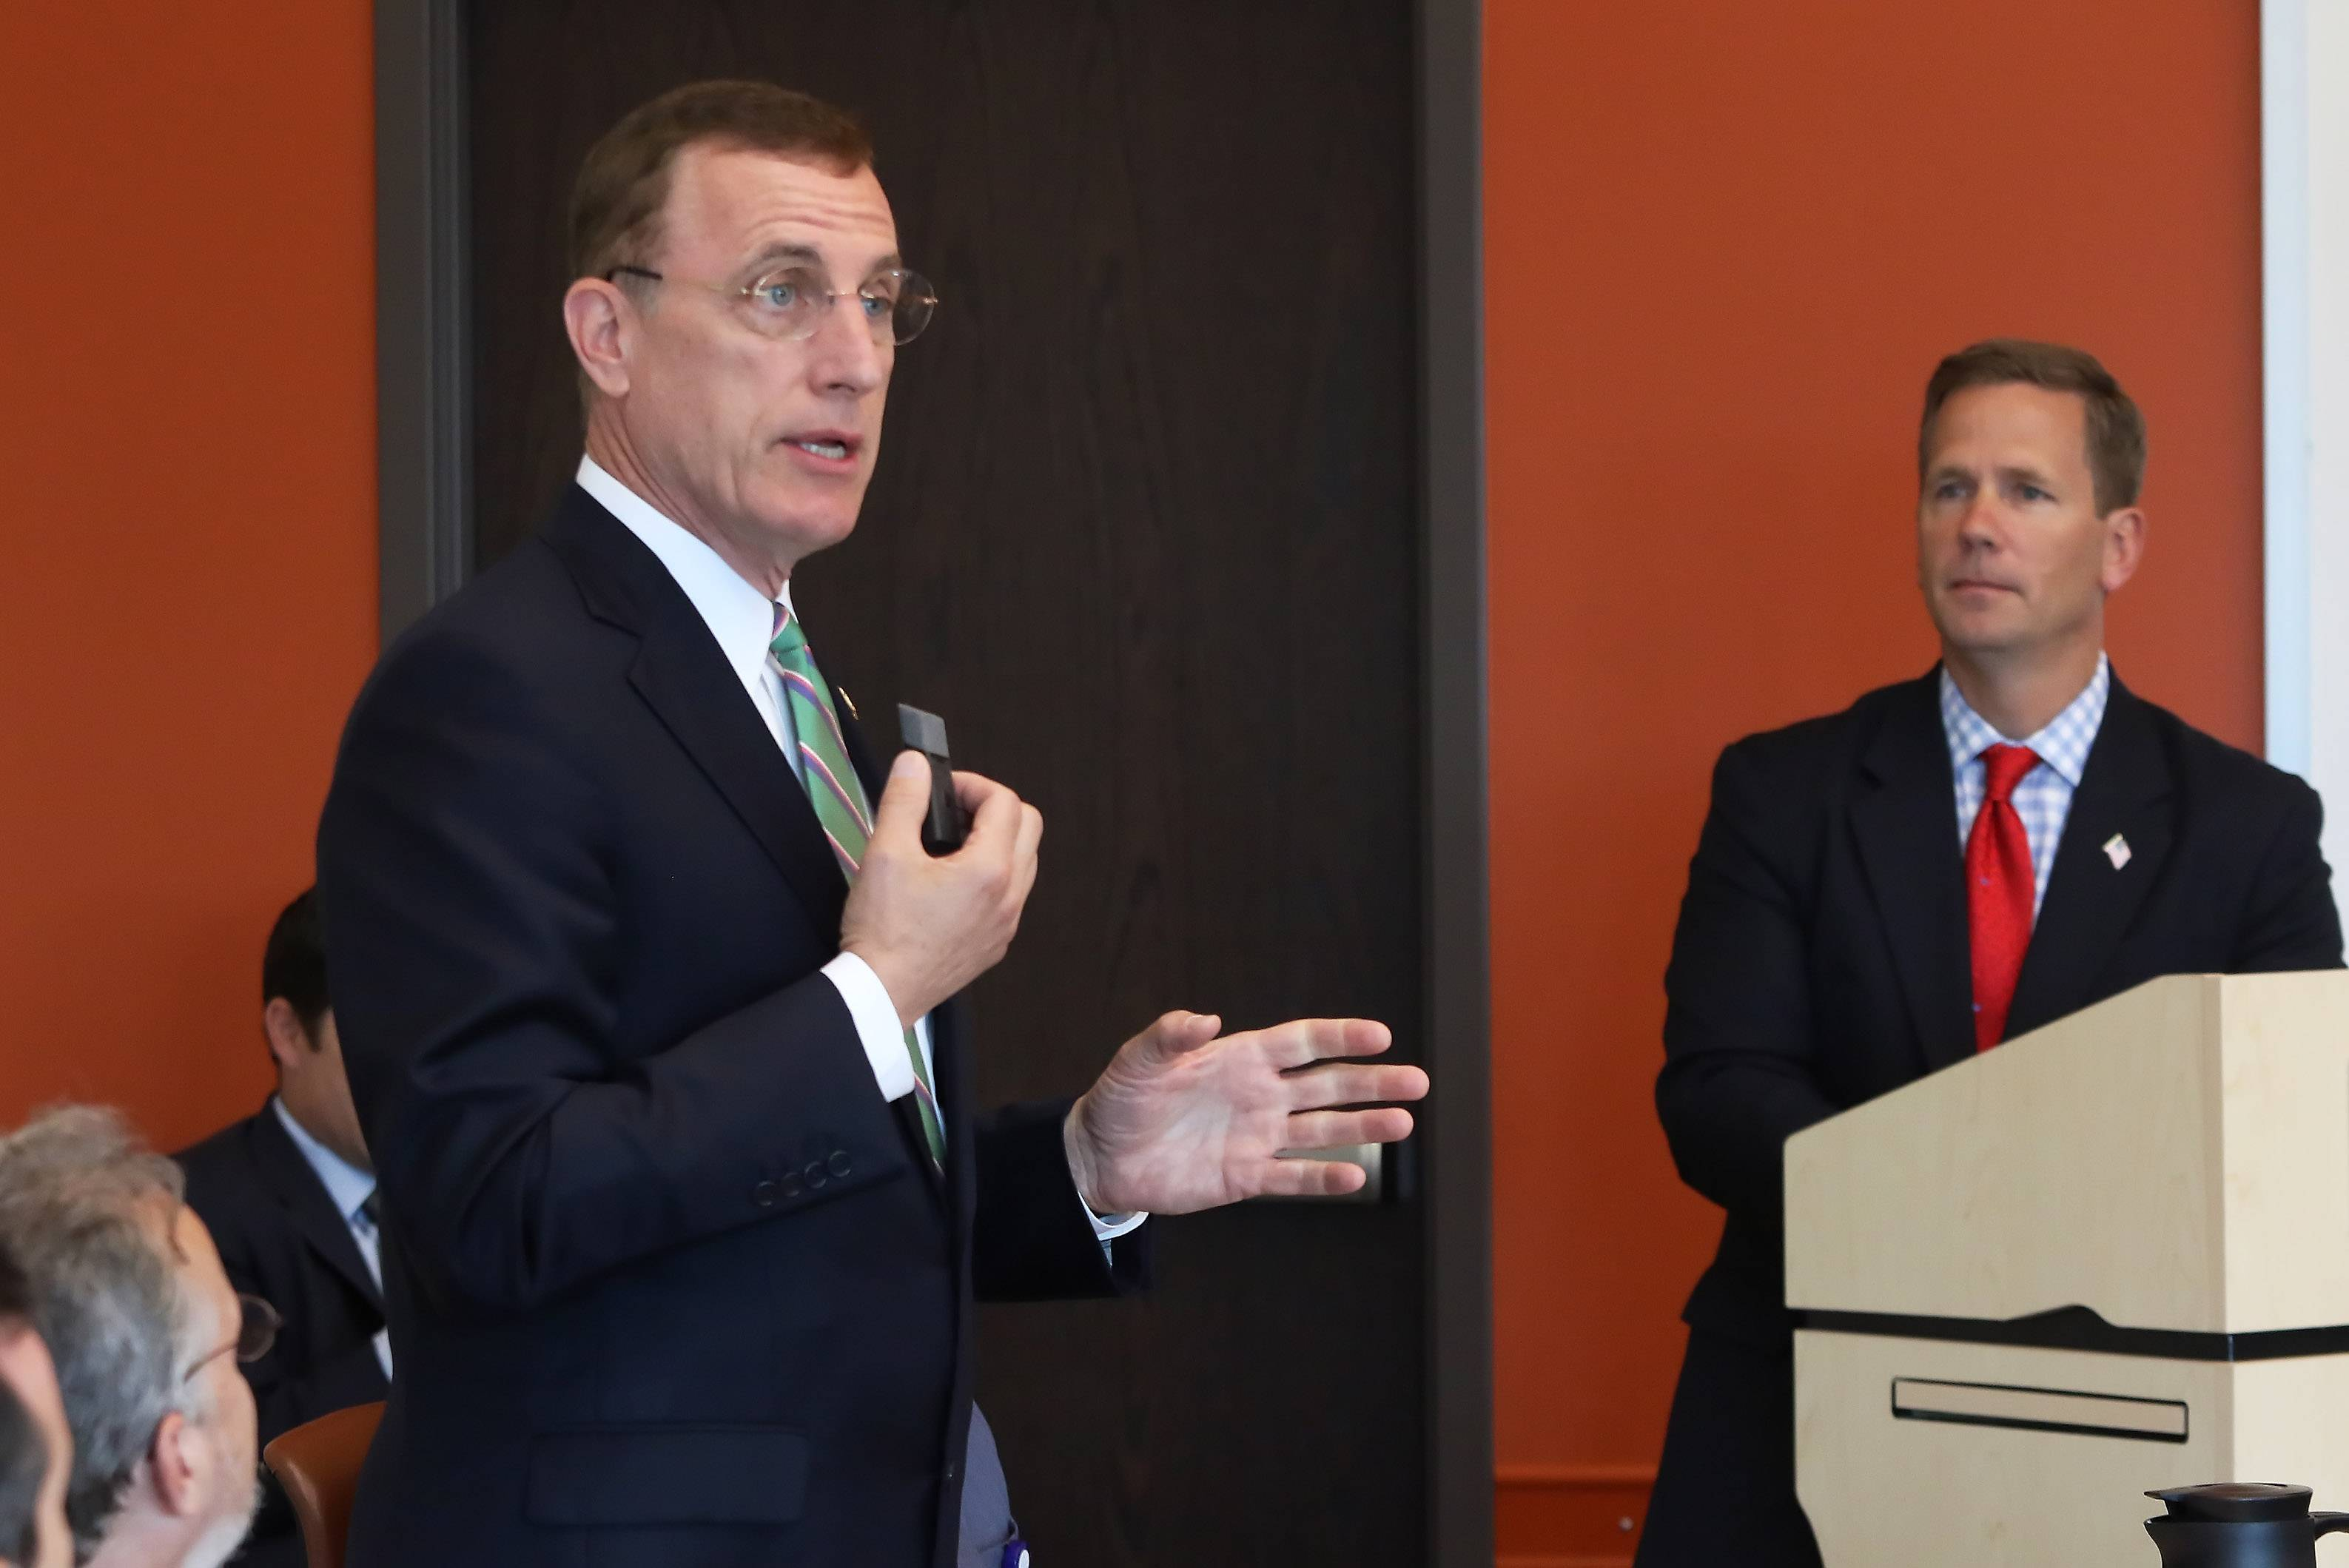 Congressmen Tim Murphy of Pennsylvania, left, and Bob Dold of Kenilworth discuss the Helping Families in Mental Health Crisis Act on Tuesday during a summit at the Lake County Health Department in Waukegan.